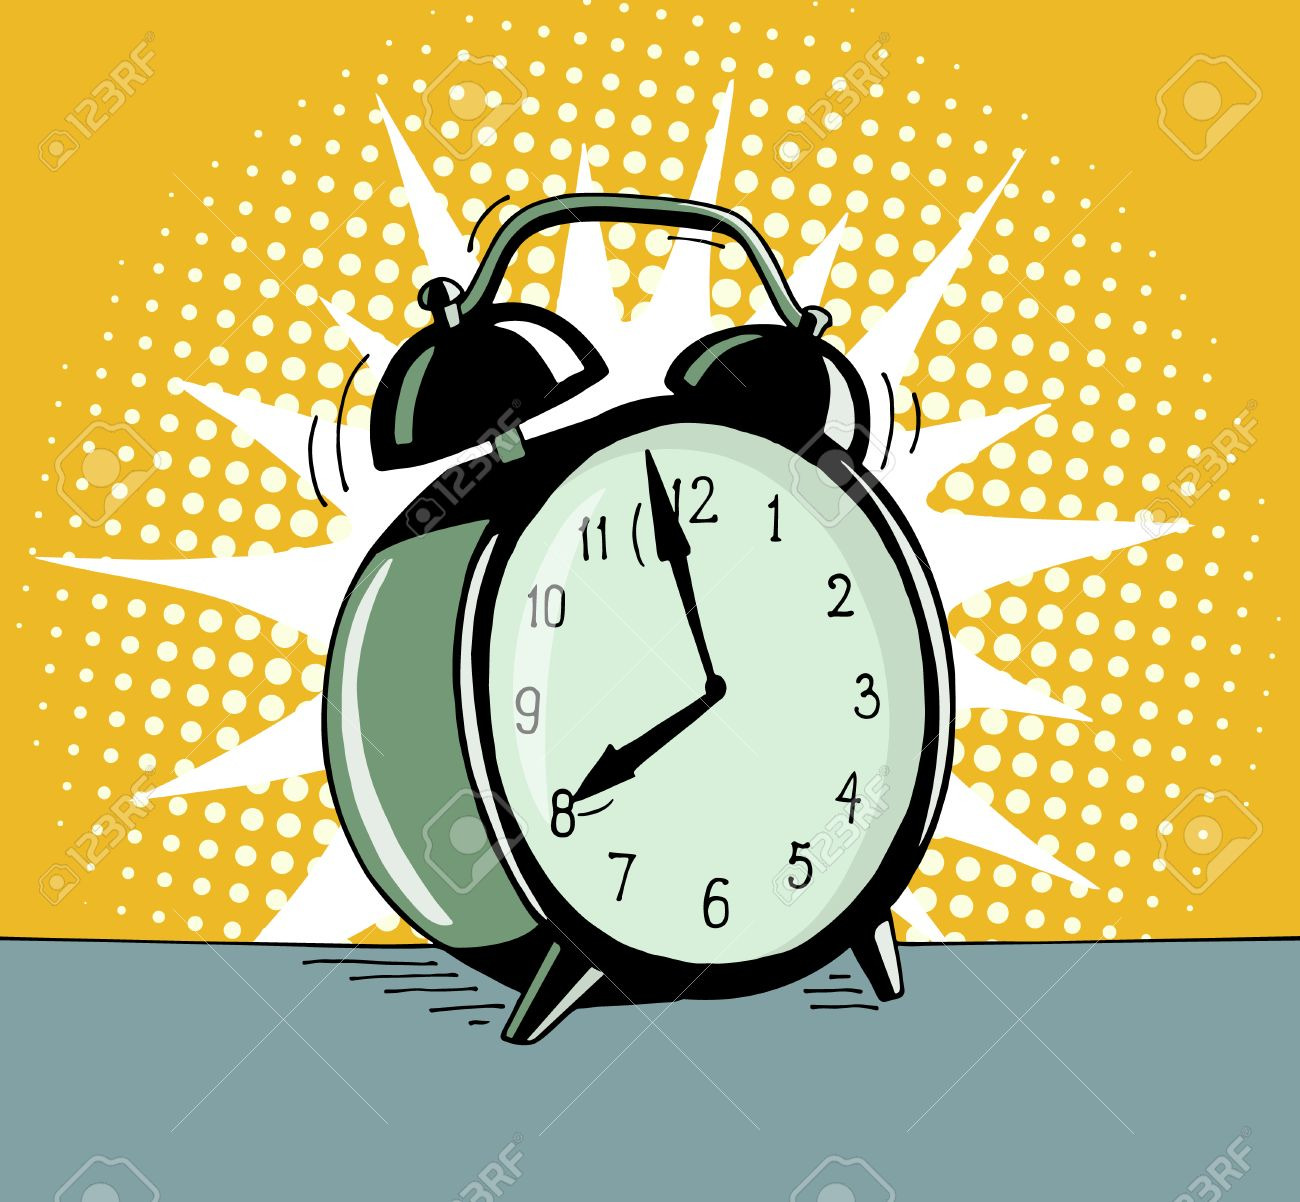 Cartoon pop art alarm clock. Comic retro hand drawn illustration - The alarm clock is ringing to wake up in the morning. Vector isolated on yellow halftone background. - 63718143